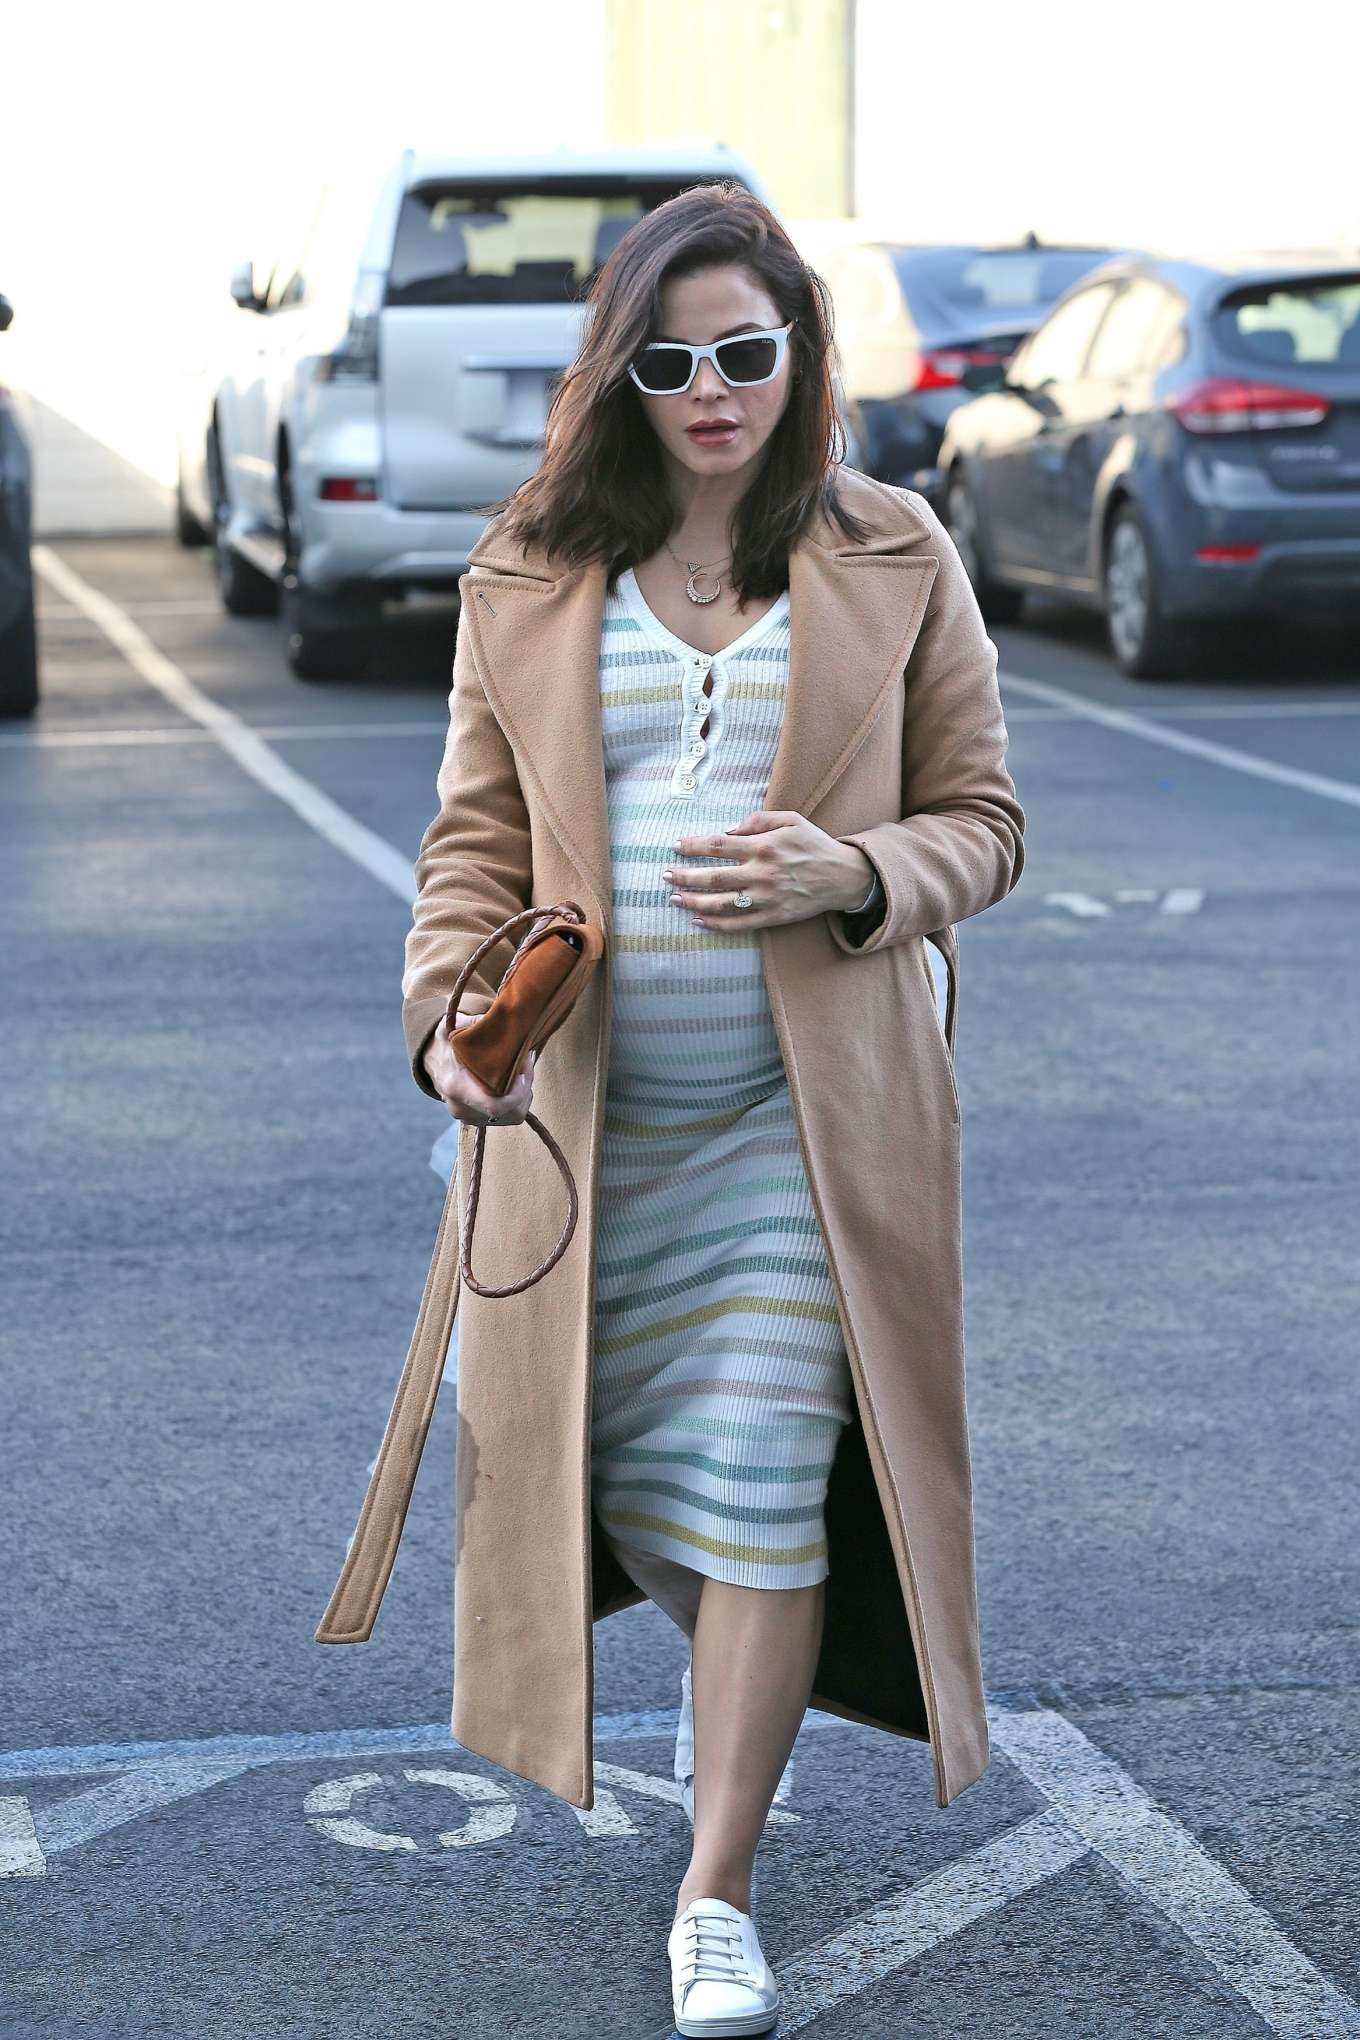 Jenna Dewan wearing a figure hugging white dress with striped and a V-neck